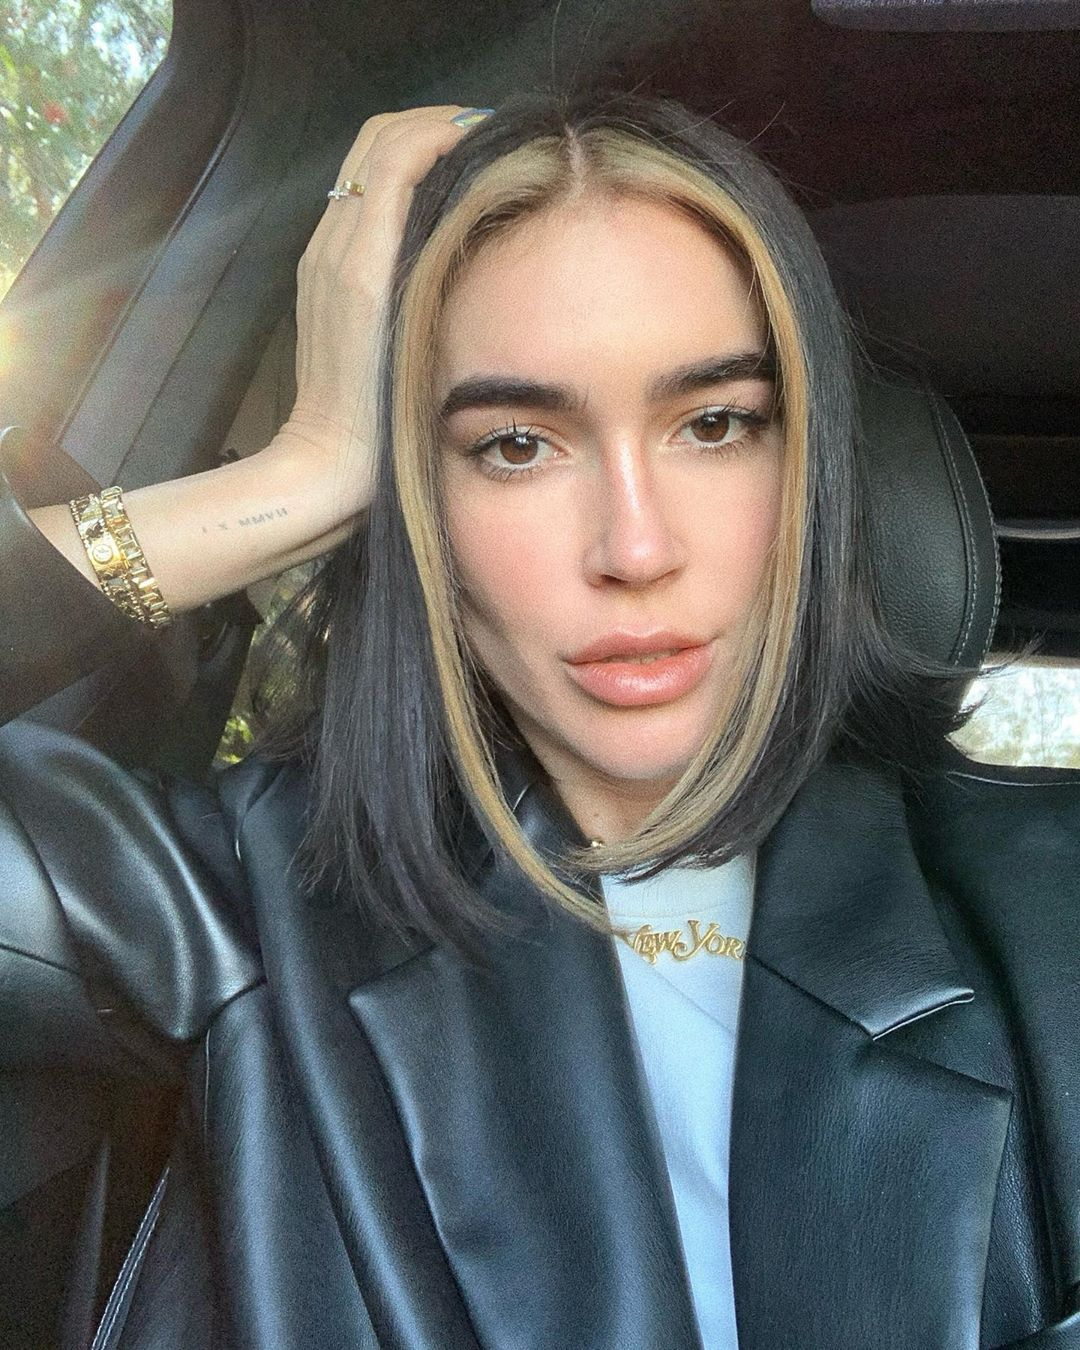 Brittany Xavier On Instagram Chunky Highlights Or None Pls Color By My Fave Dell Miller In 2020 Hair Inspo Color Hair Color Streaks Aesthetic Hair